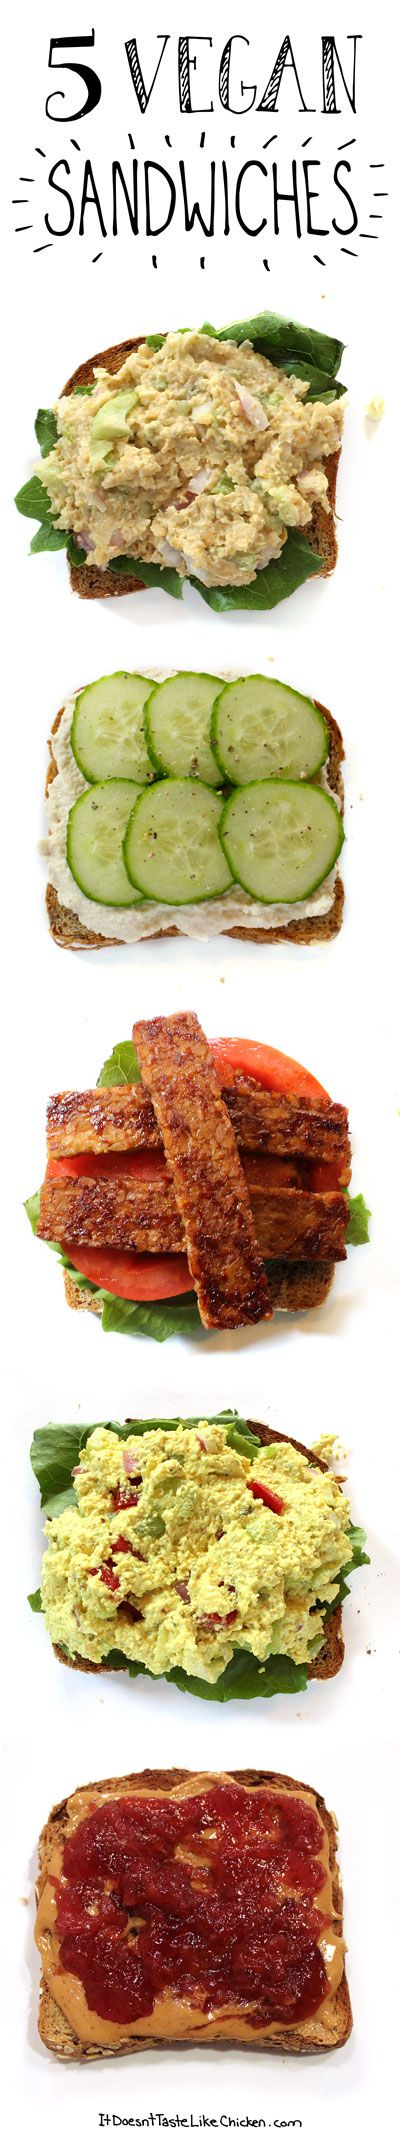 This is your #6 Top Pin in the Vegan Community Board in October: 5 Vegan Sandwiches!!! One for every day of the work or school week - 319 re-pins (You voted with yor re-pins). Congratulations @mywifemakes ! Vegan Community Board http://www.pinterest.com/heidrunkarin/vegan-community